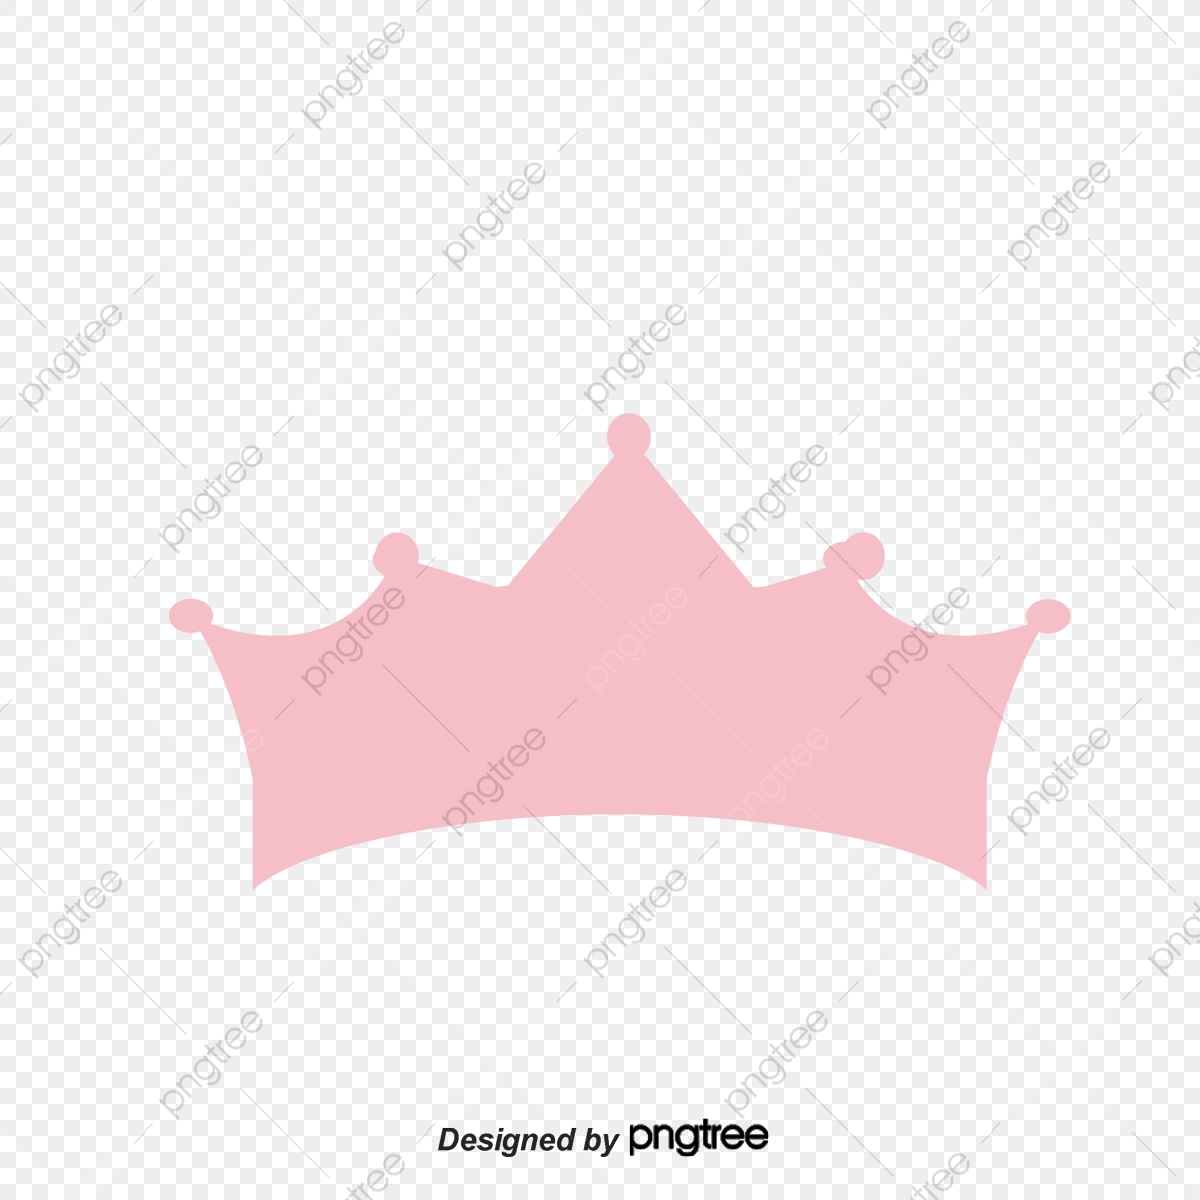 Cartoon Crown Birthday Crown Clipart Birthday Clipart Pink Crown Png Transparent Clipart Image And Psd File For Free Download Download this golden crown, crown clipart, pink, diamond png clipart image with transparent background or psd file for free. https pngtree com freepng cartoon crown birthday 3486588 html